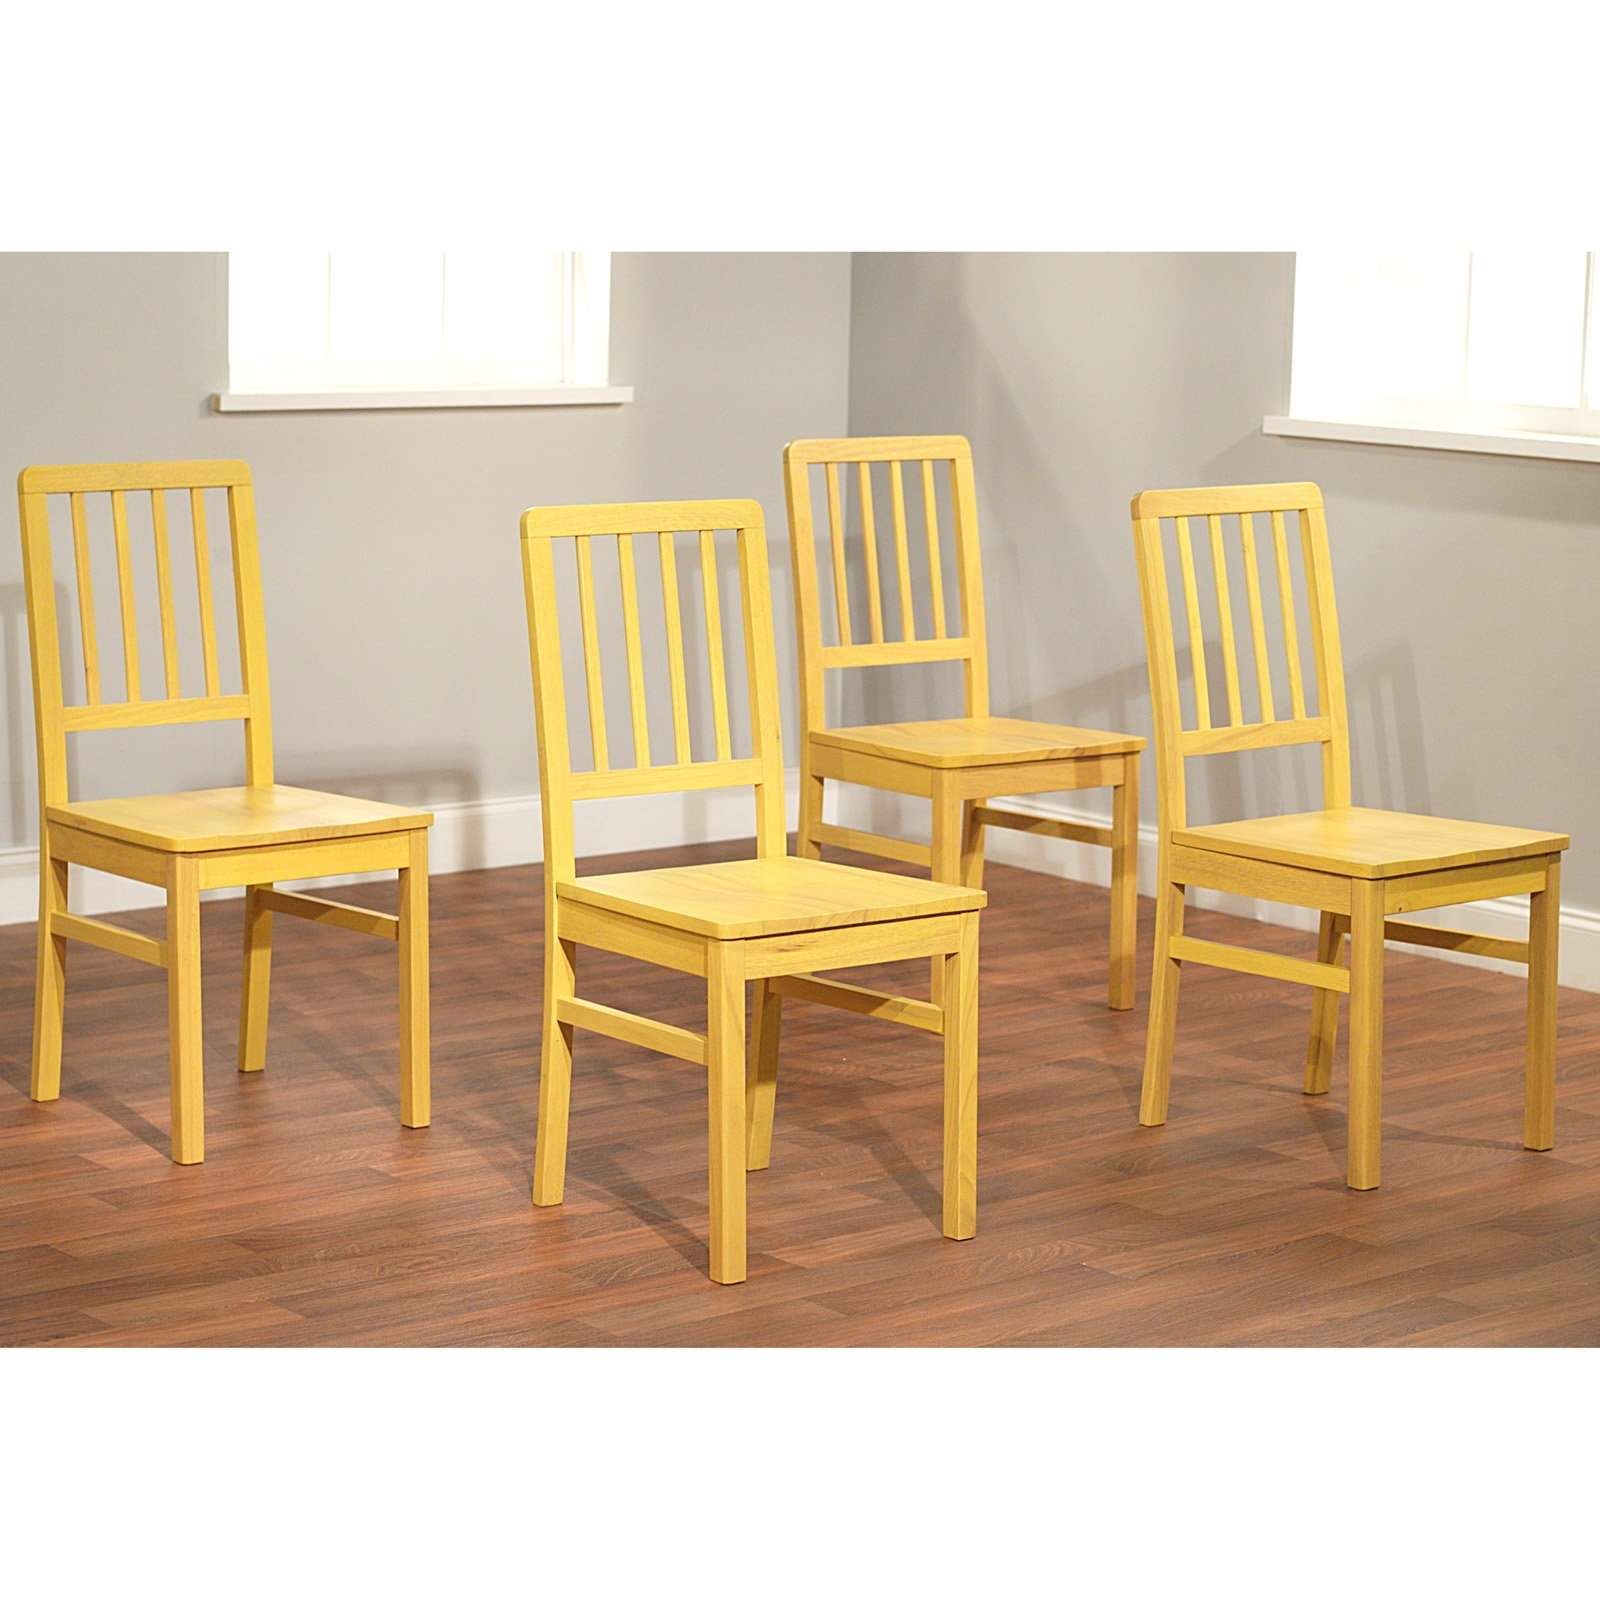 Camden Dining Chairs With Famous Camden Dining Chair Set Of 4, Multiple Colors – Walmart (View 3 of 20)